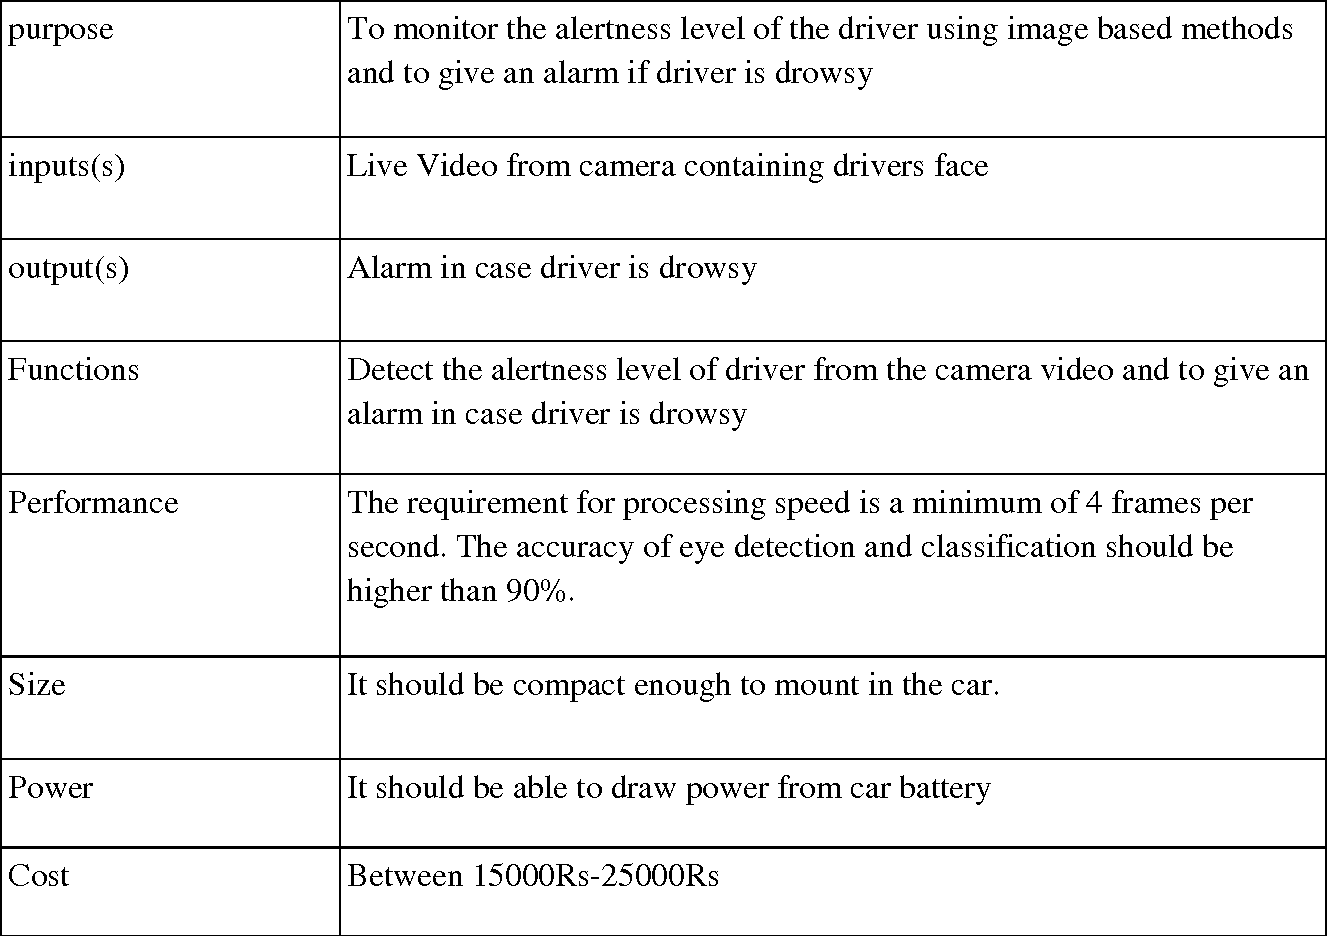 Figure 1 for Design and Implementation of Real-time Algorithms for Eye Tracking and PERCLOS Measurement for on board Estimation of Alertness of Drivers